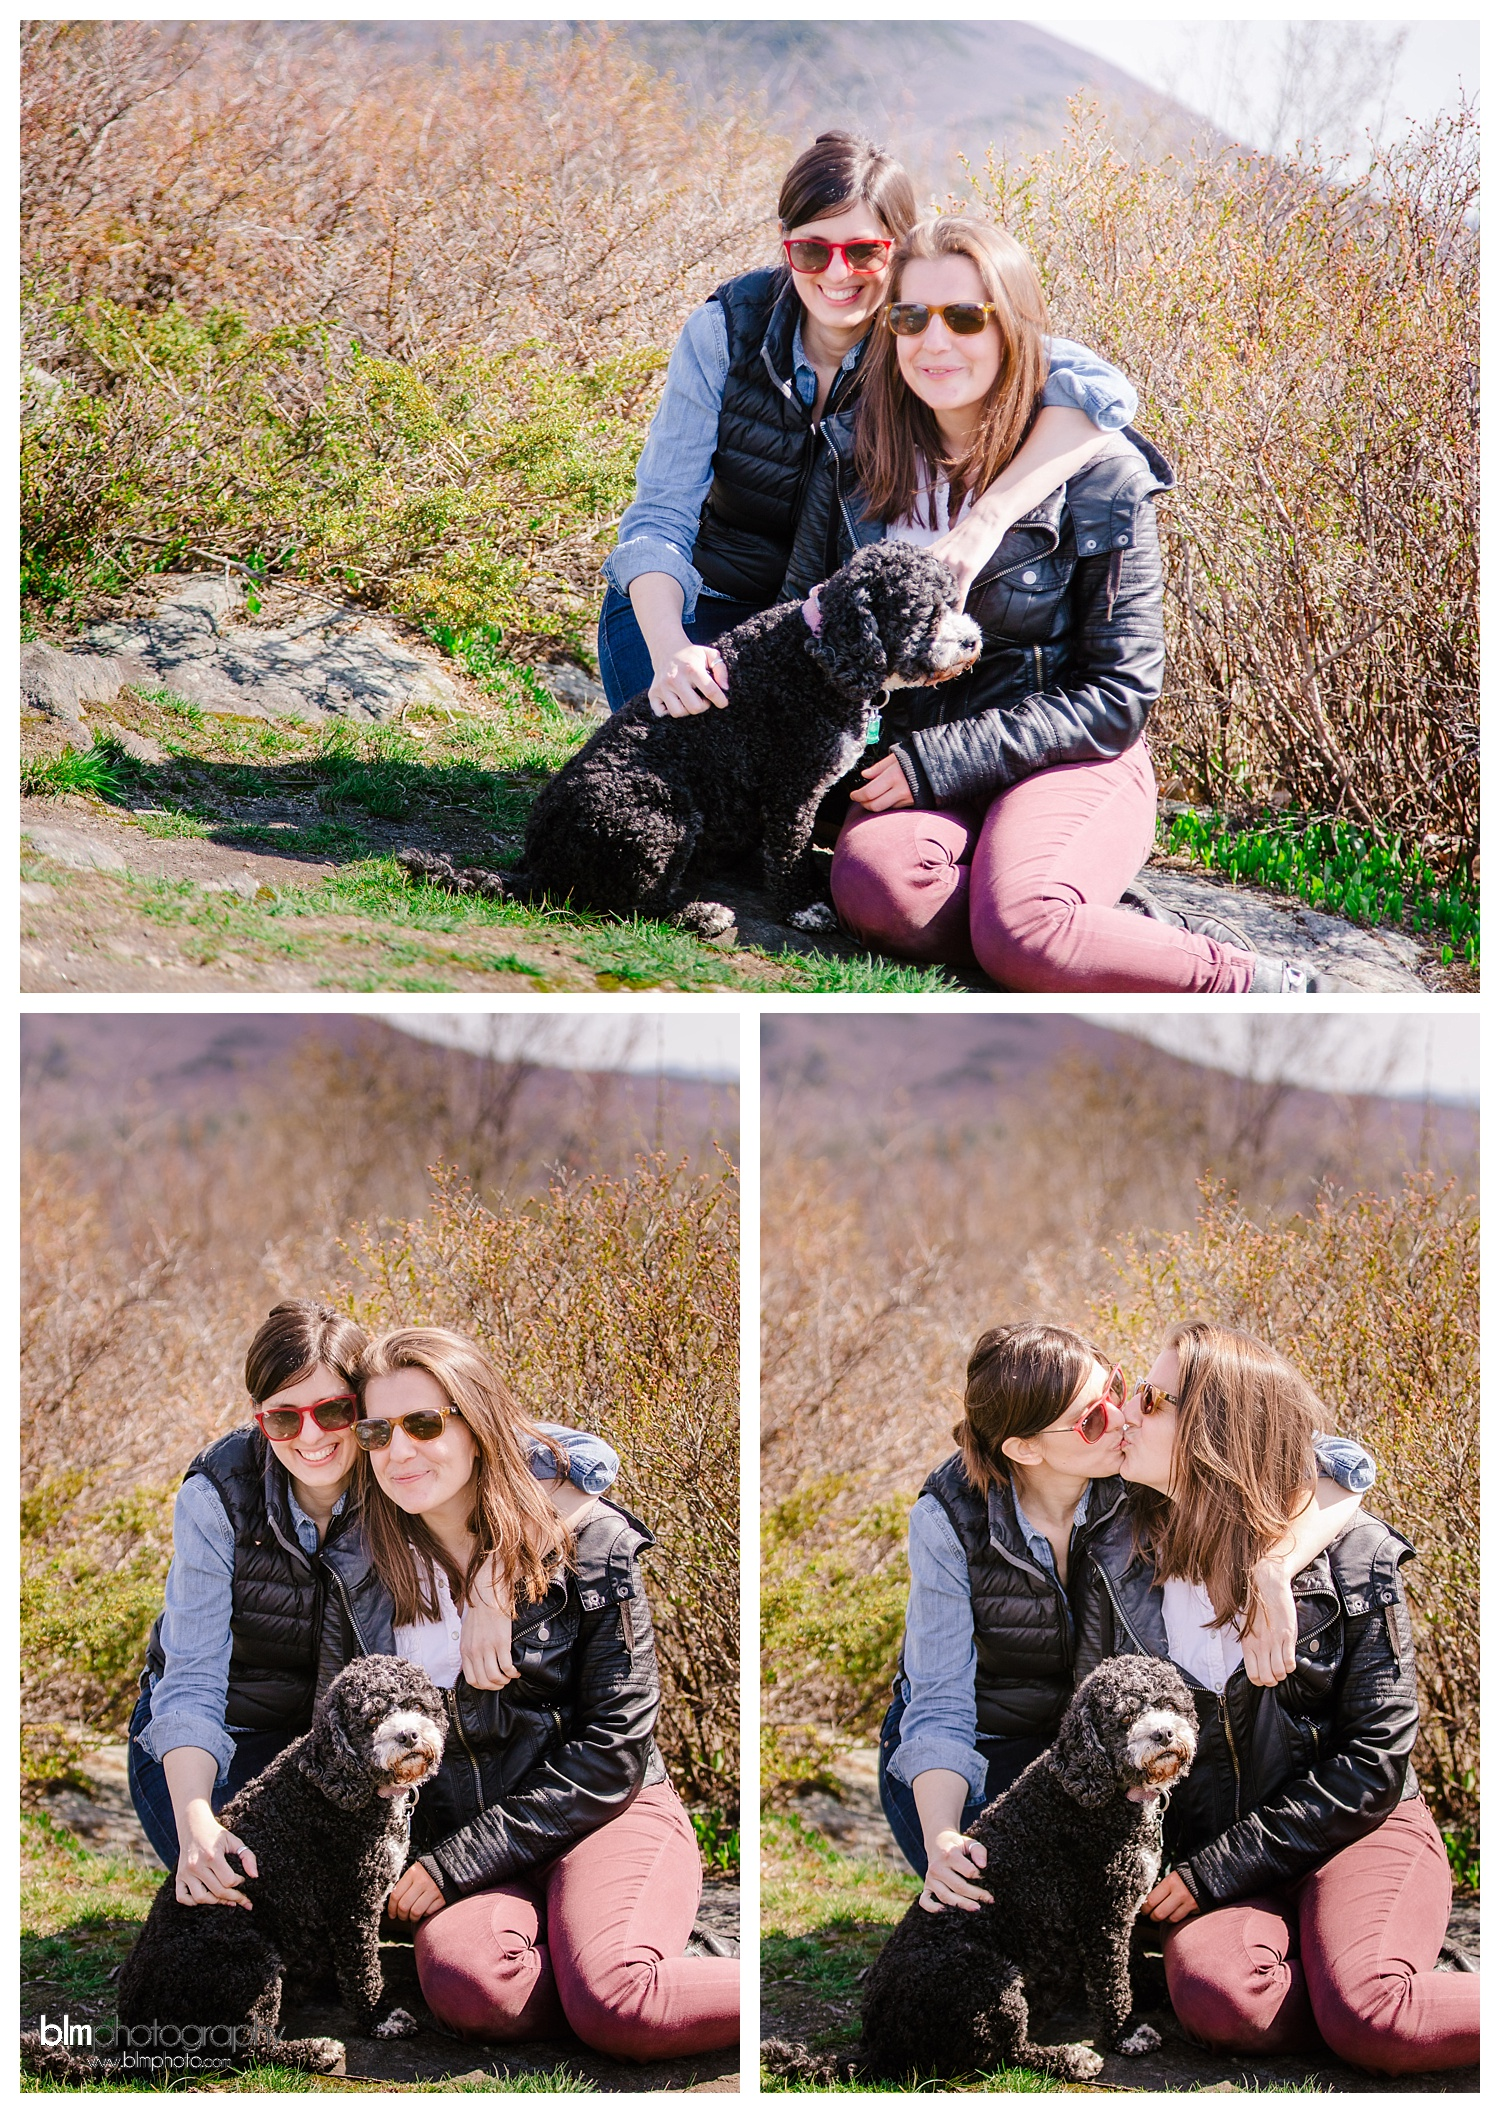 Apr,April,BLM,Brianna Morrissey,Brides to be,Brie Morrissey,Engagement Photos,Gap Mountain,Gay Couple,Gay Wedding,Hiking Engagment session,LGBT,Lesbian,Lesbian Couple,Lesbian Engagement,Liza-and-Madi_Gap-Mountain-Engagement,Love Wins,Love is Love,Photo,Photographer,Photography,Same Sex Engagement,Same Sex Wedding,www.blmphoto.com/contact,©BLM Photography 2017,